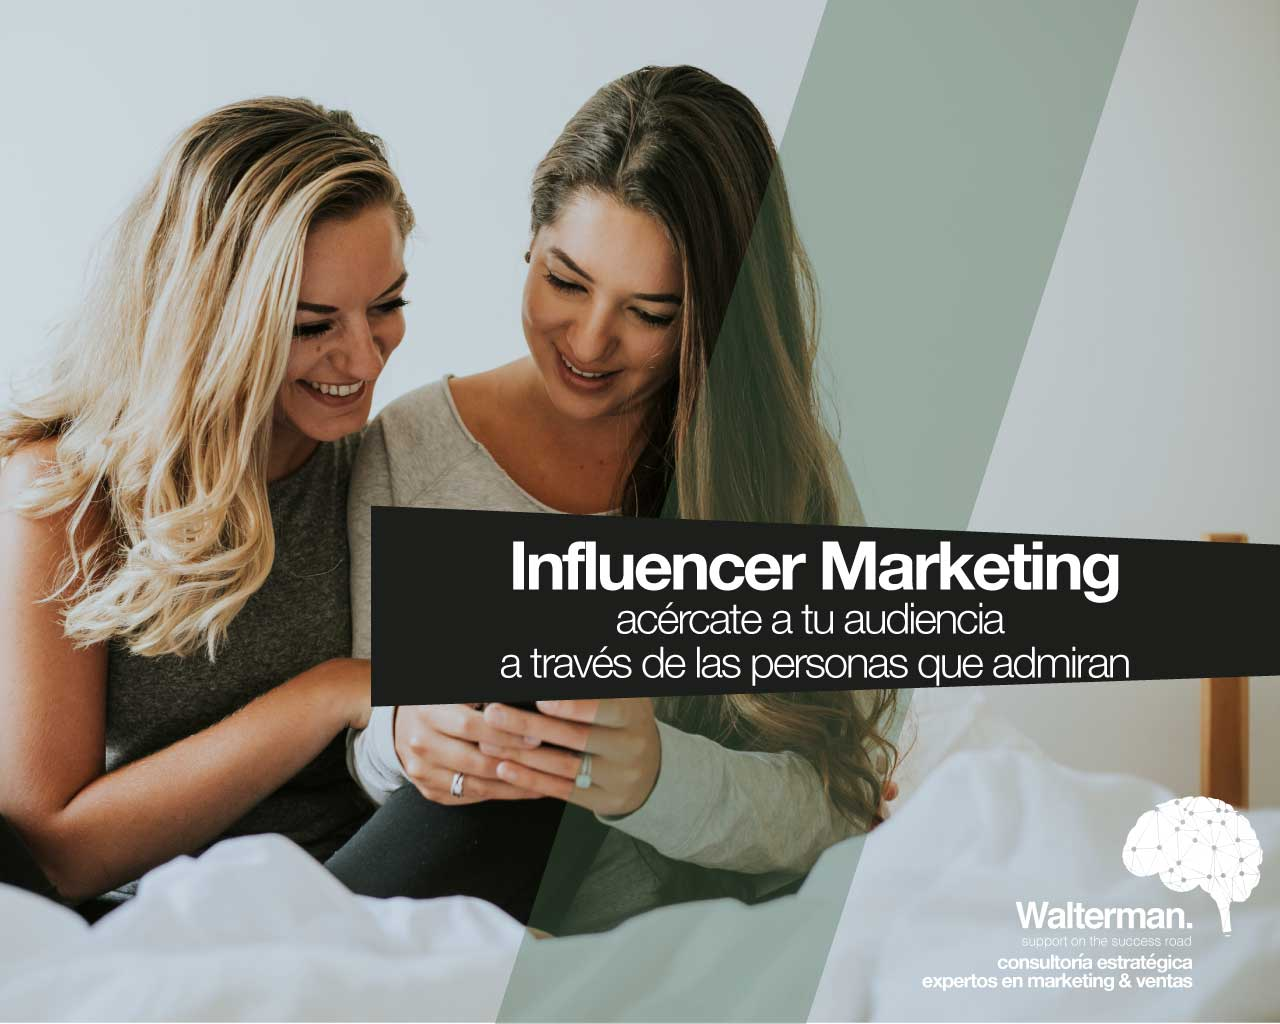 influencer marketing con walterman